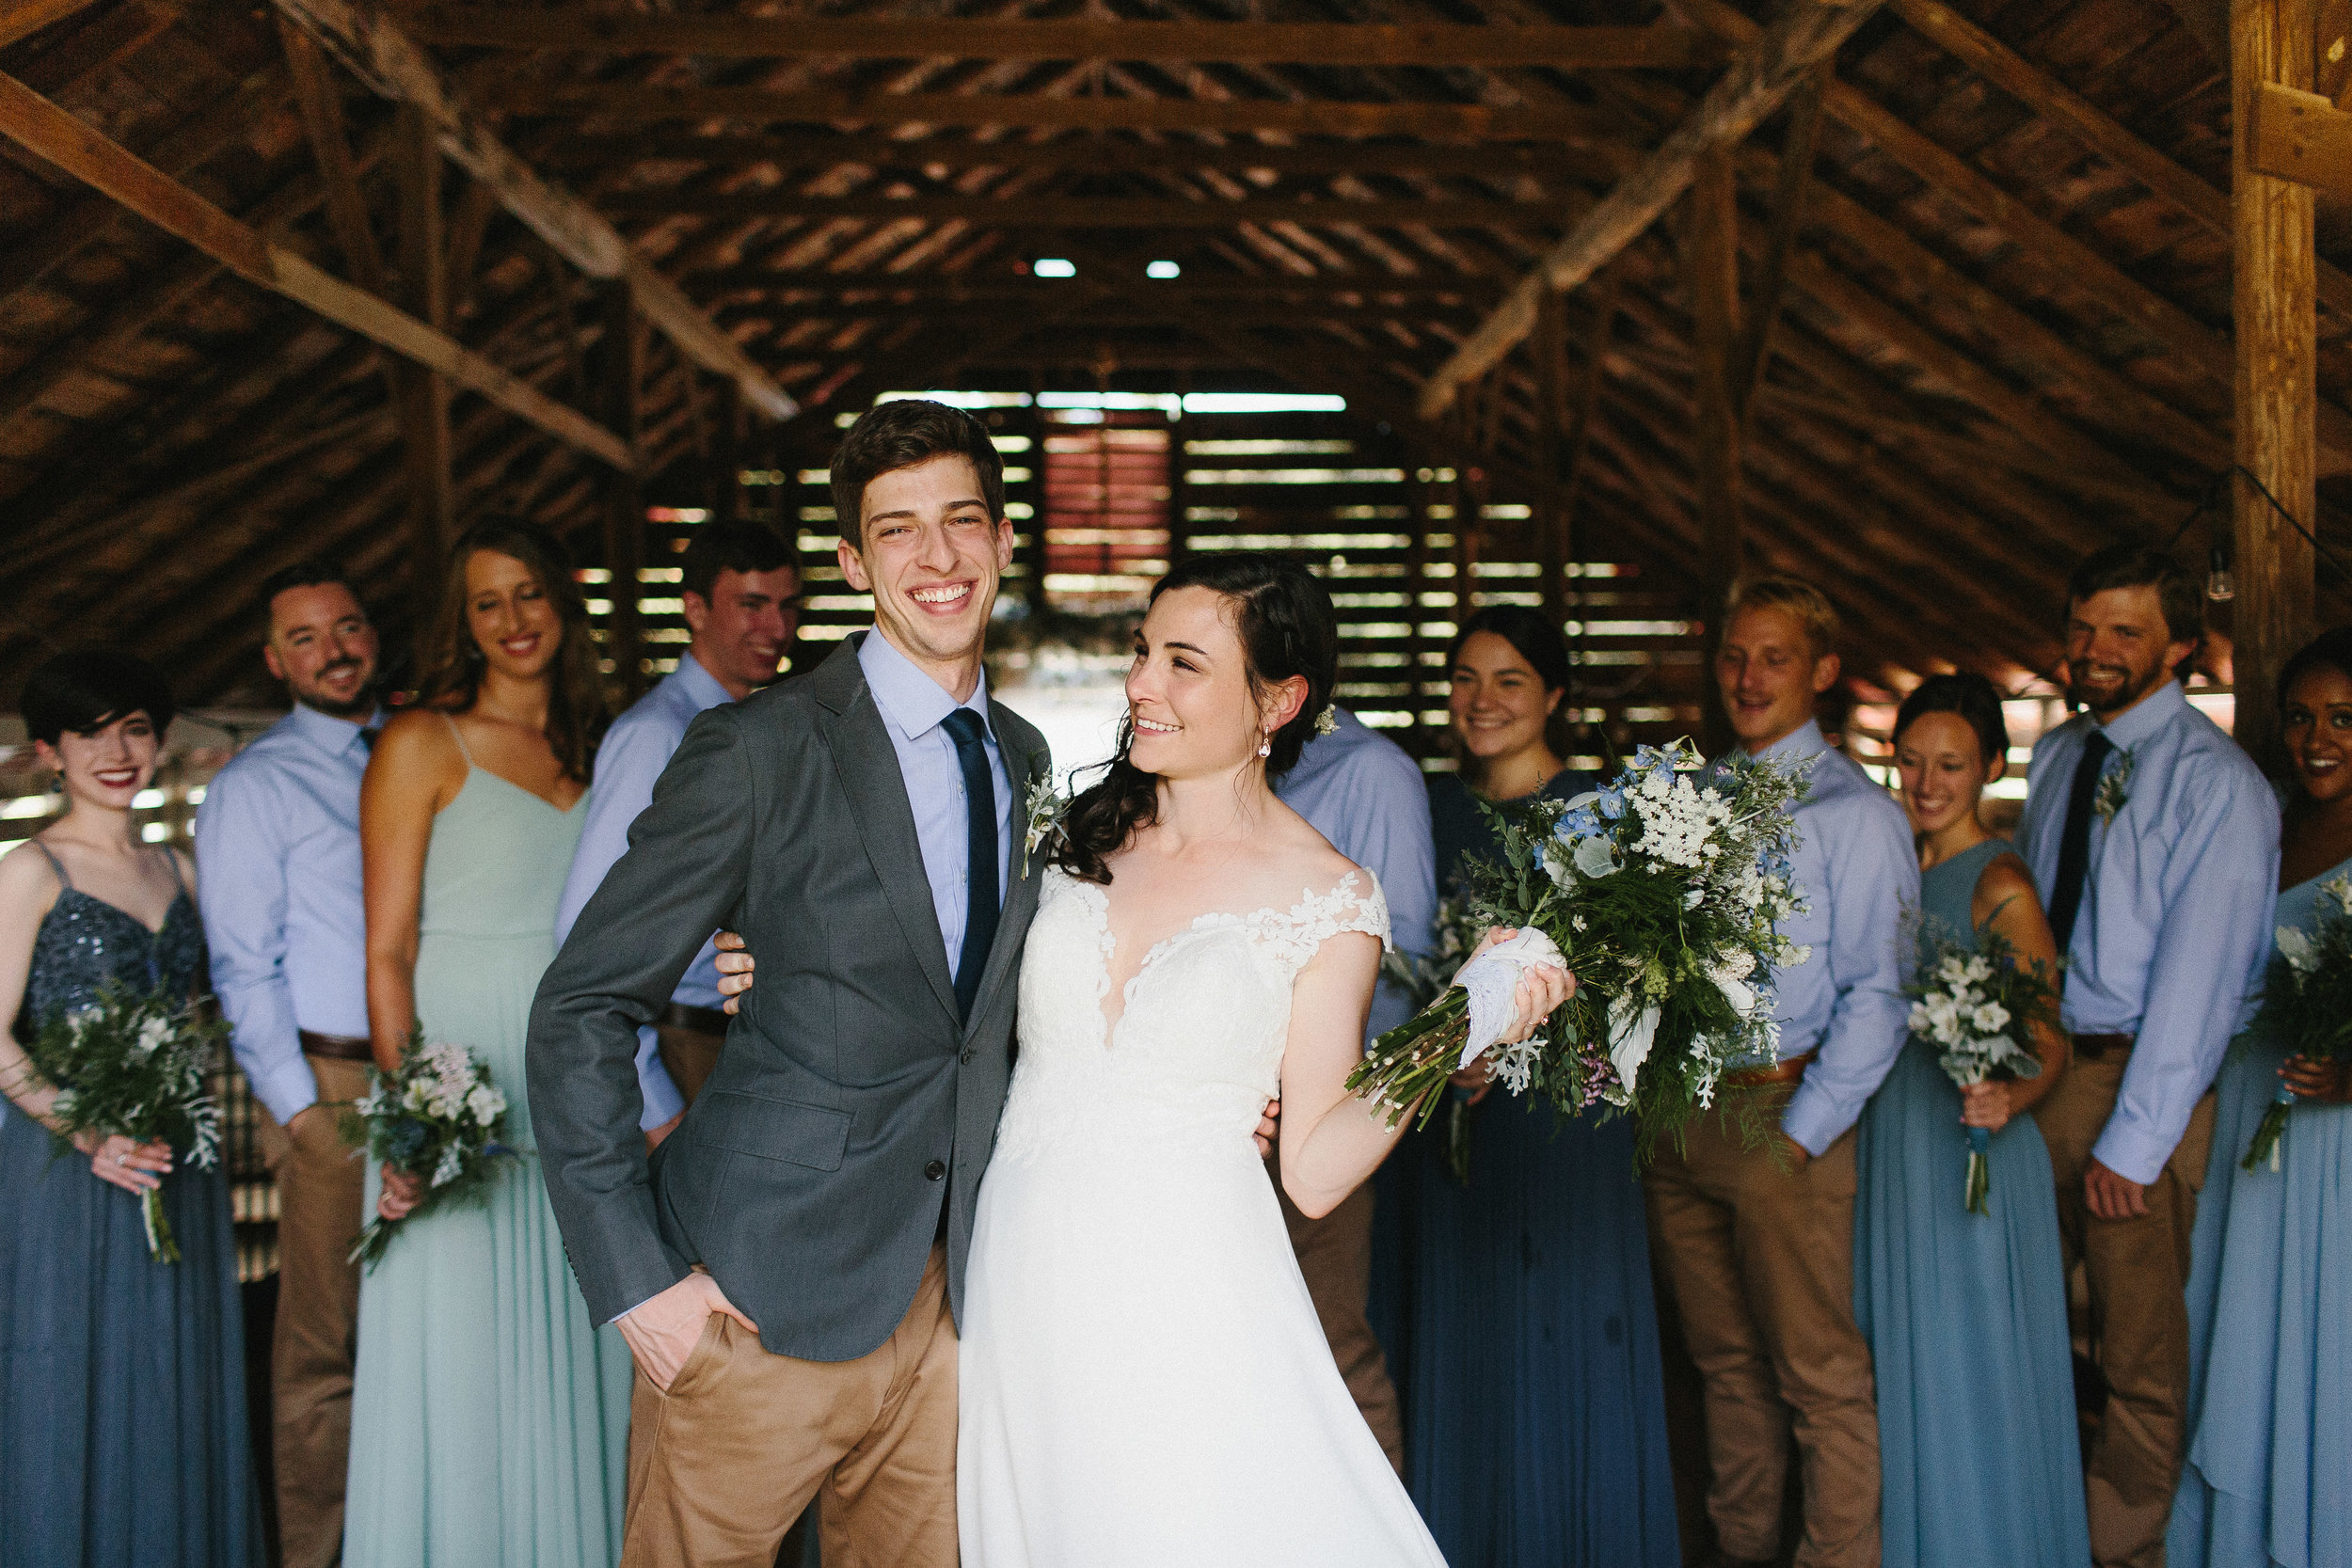 cleveland_georgia_mountain_laurel_farm_natural_classic_timeless_documentary_candid_wedding_emotional_photojournalism_river_west_1426.jpg